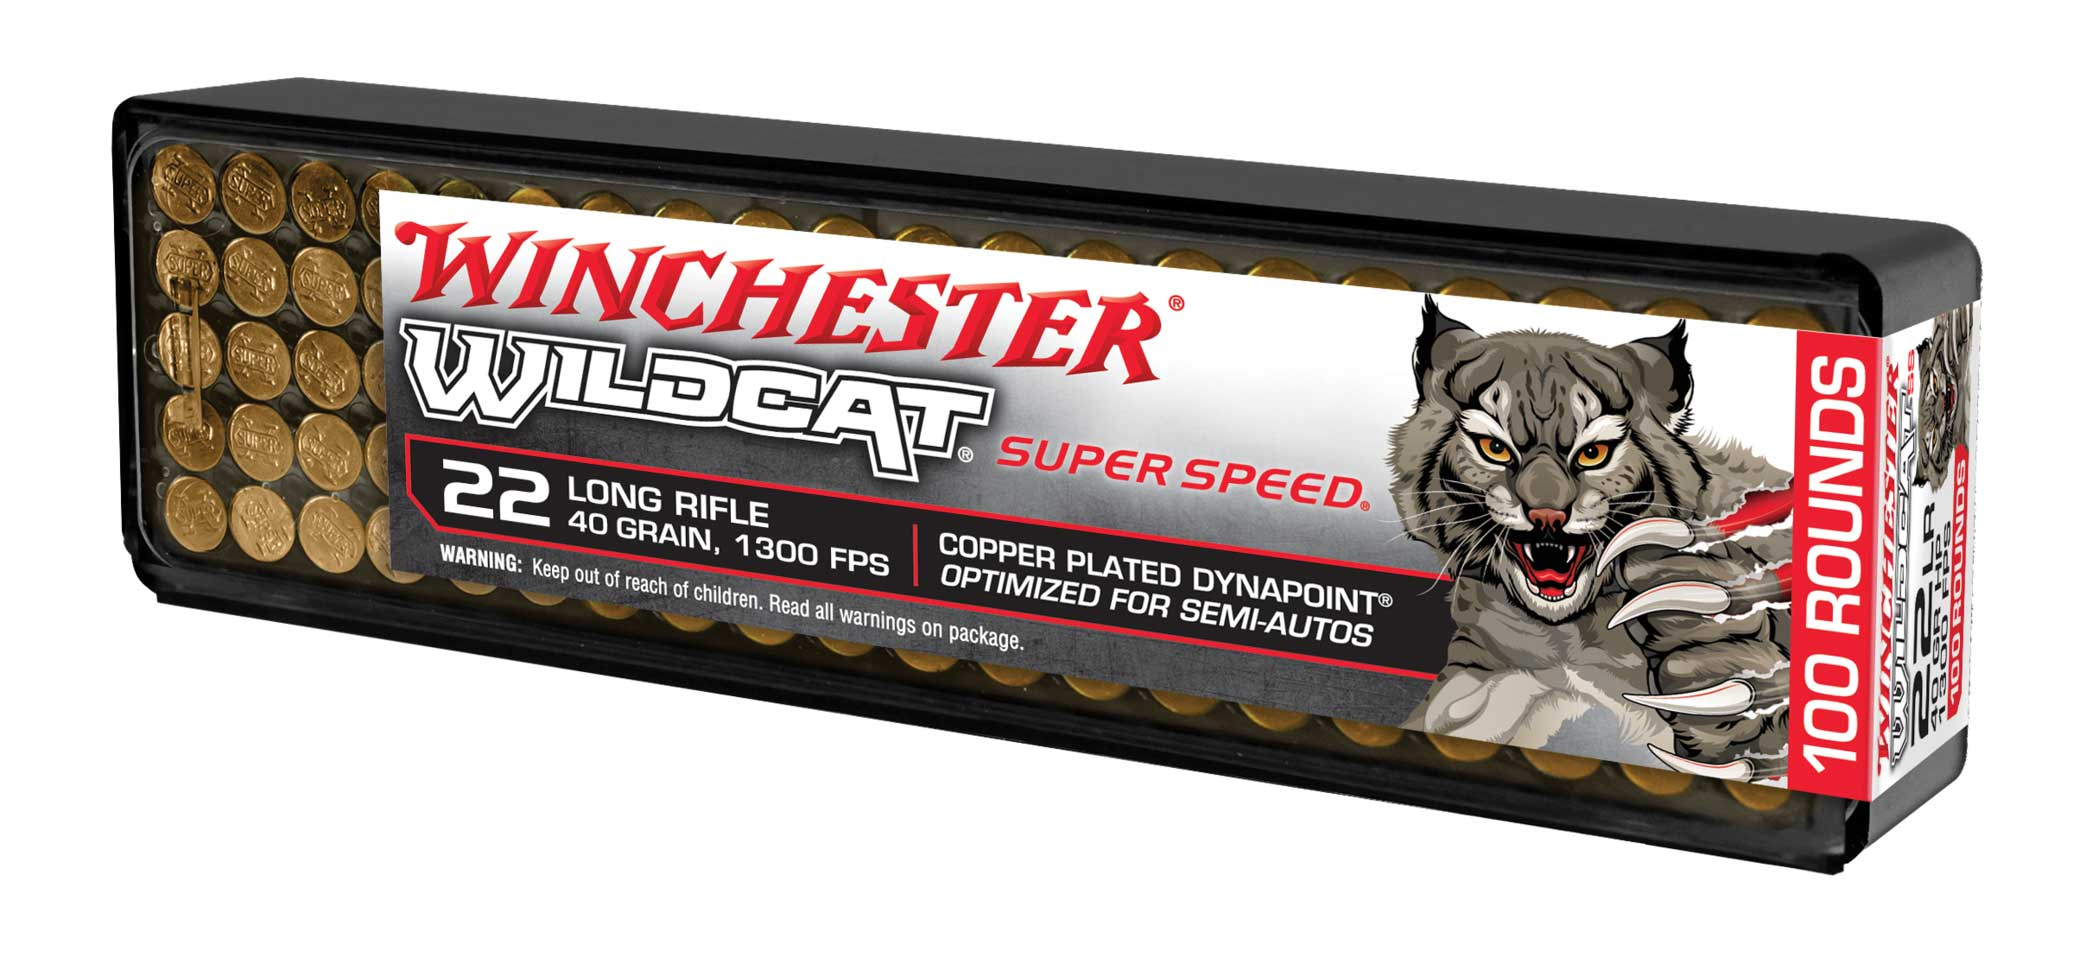 Winchester Wildcat Super Speed .22 ammunition